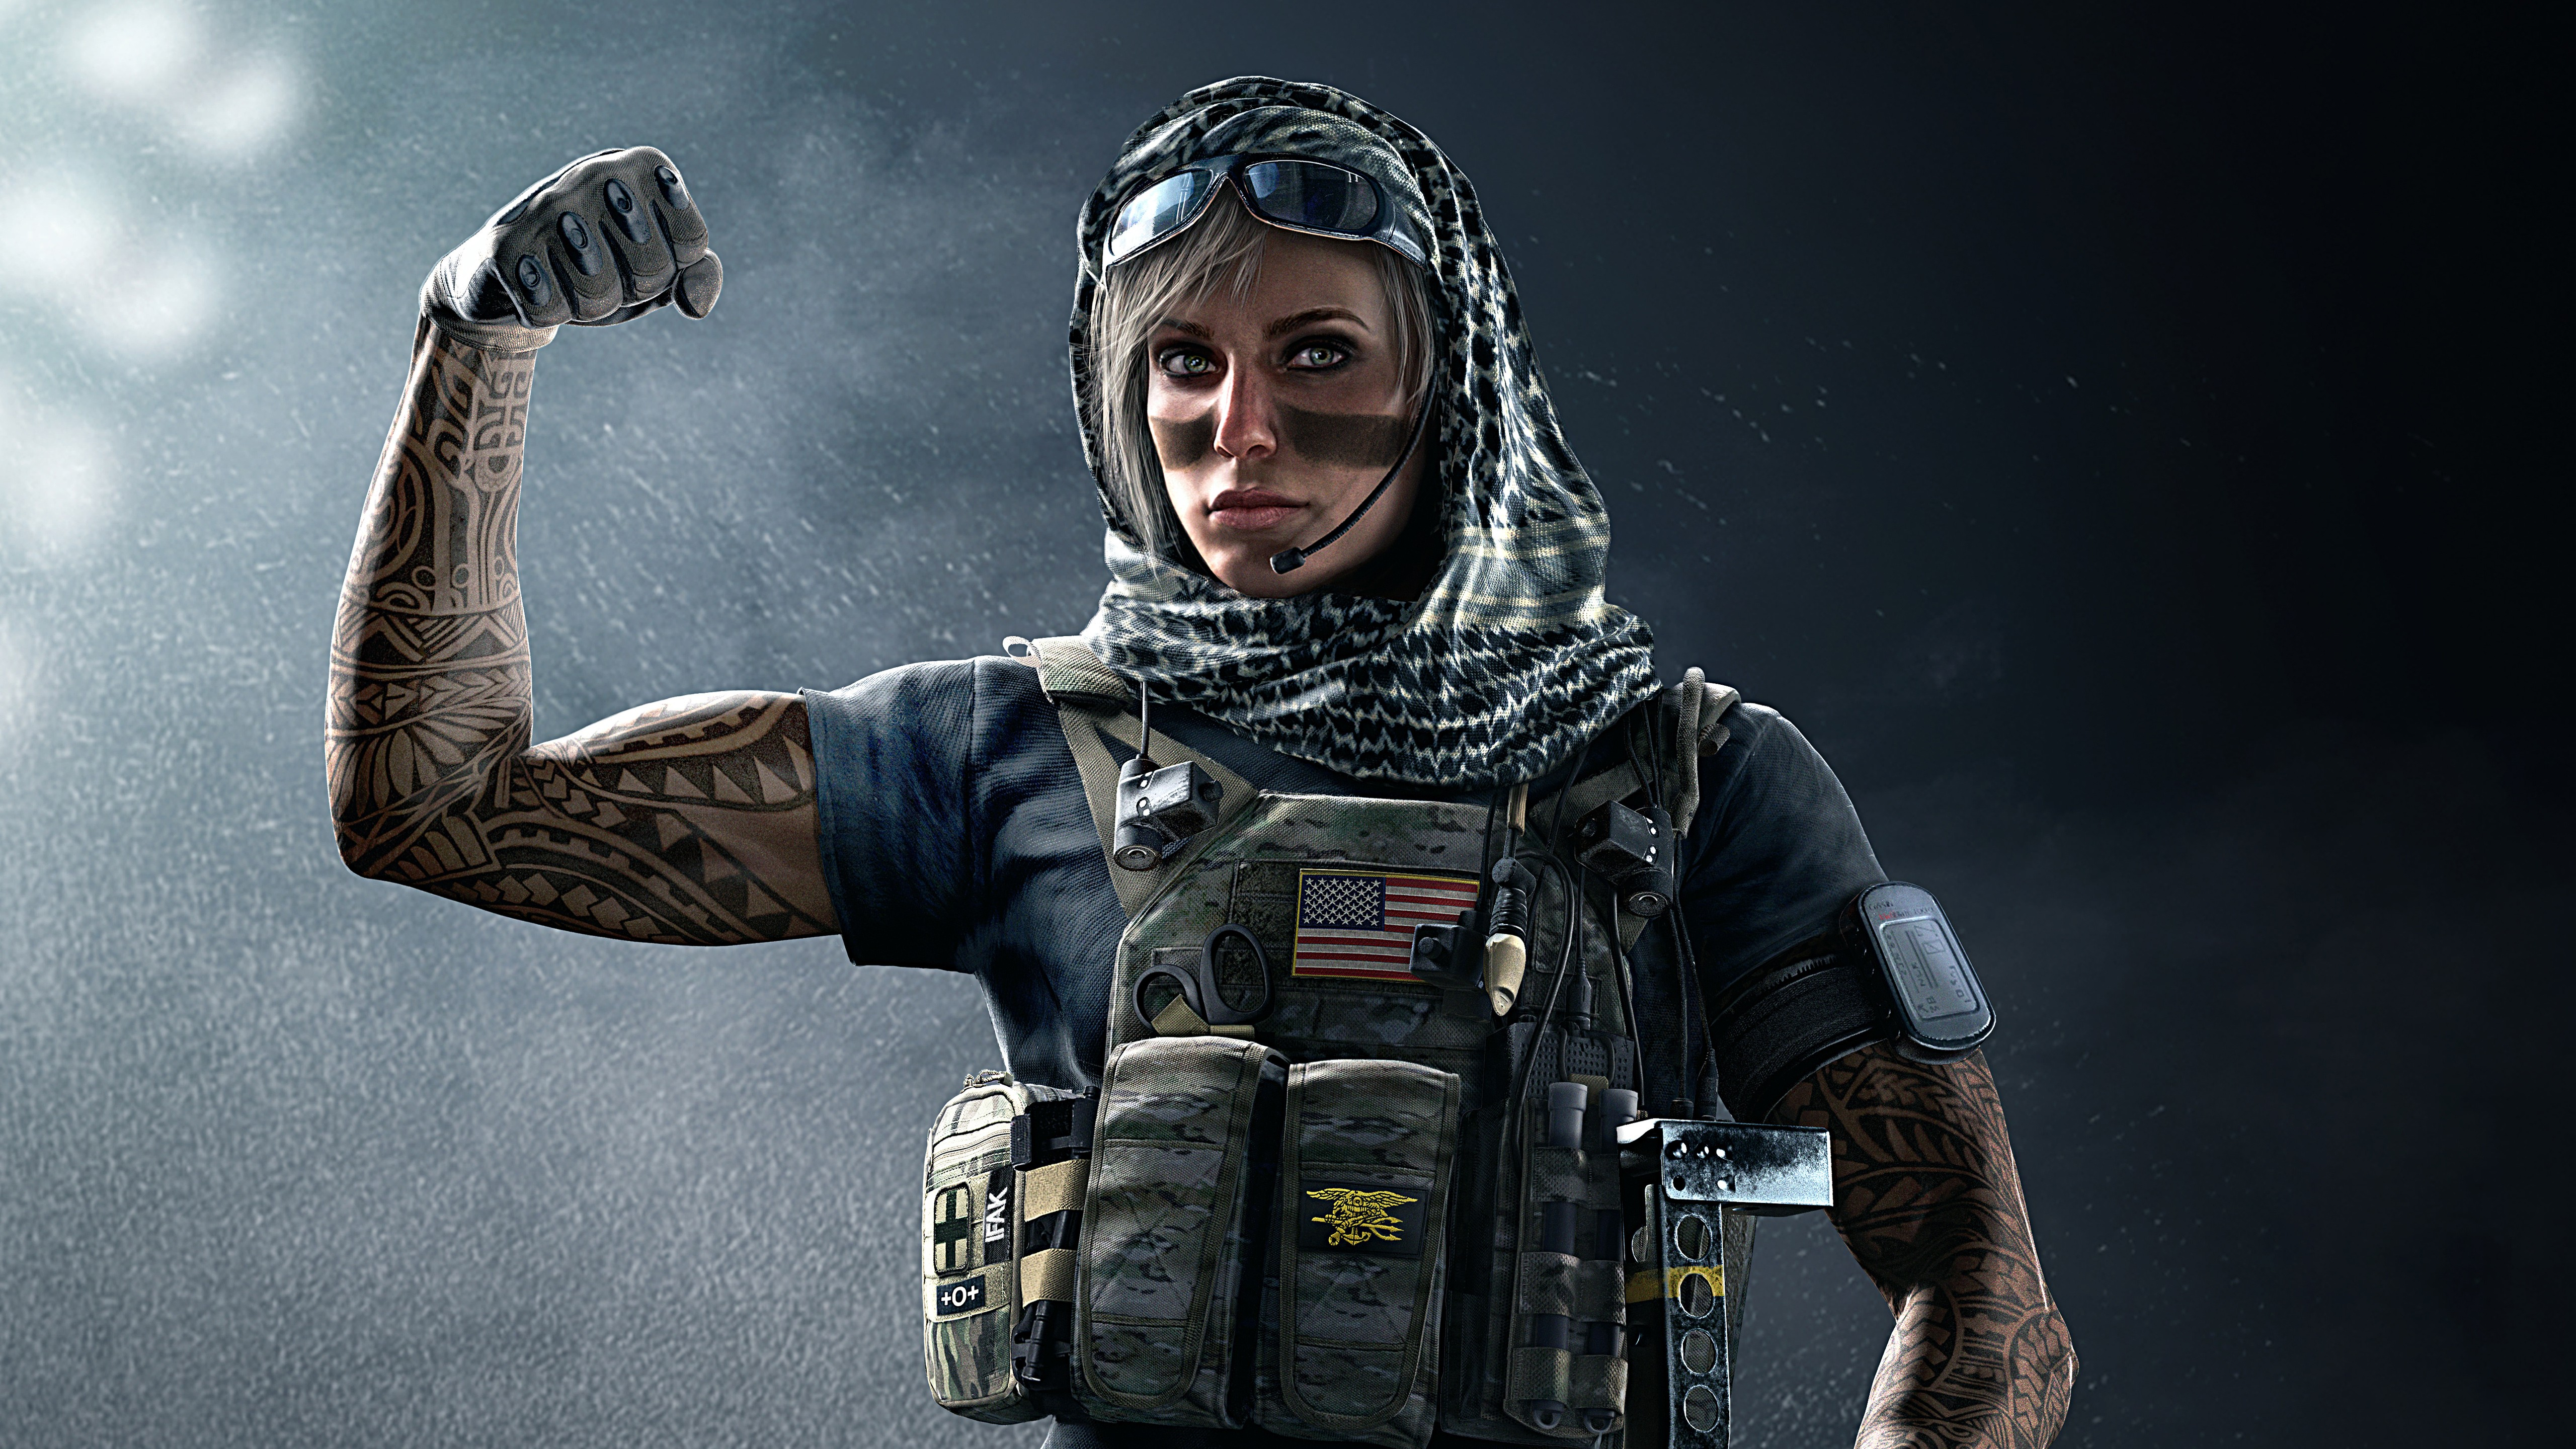 Tom Clancy's Rainbow Six Siege has just received its seventh major  post-launch content drop, with the arrival of Operation White Noise.